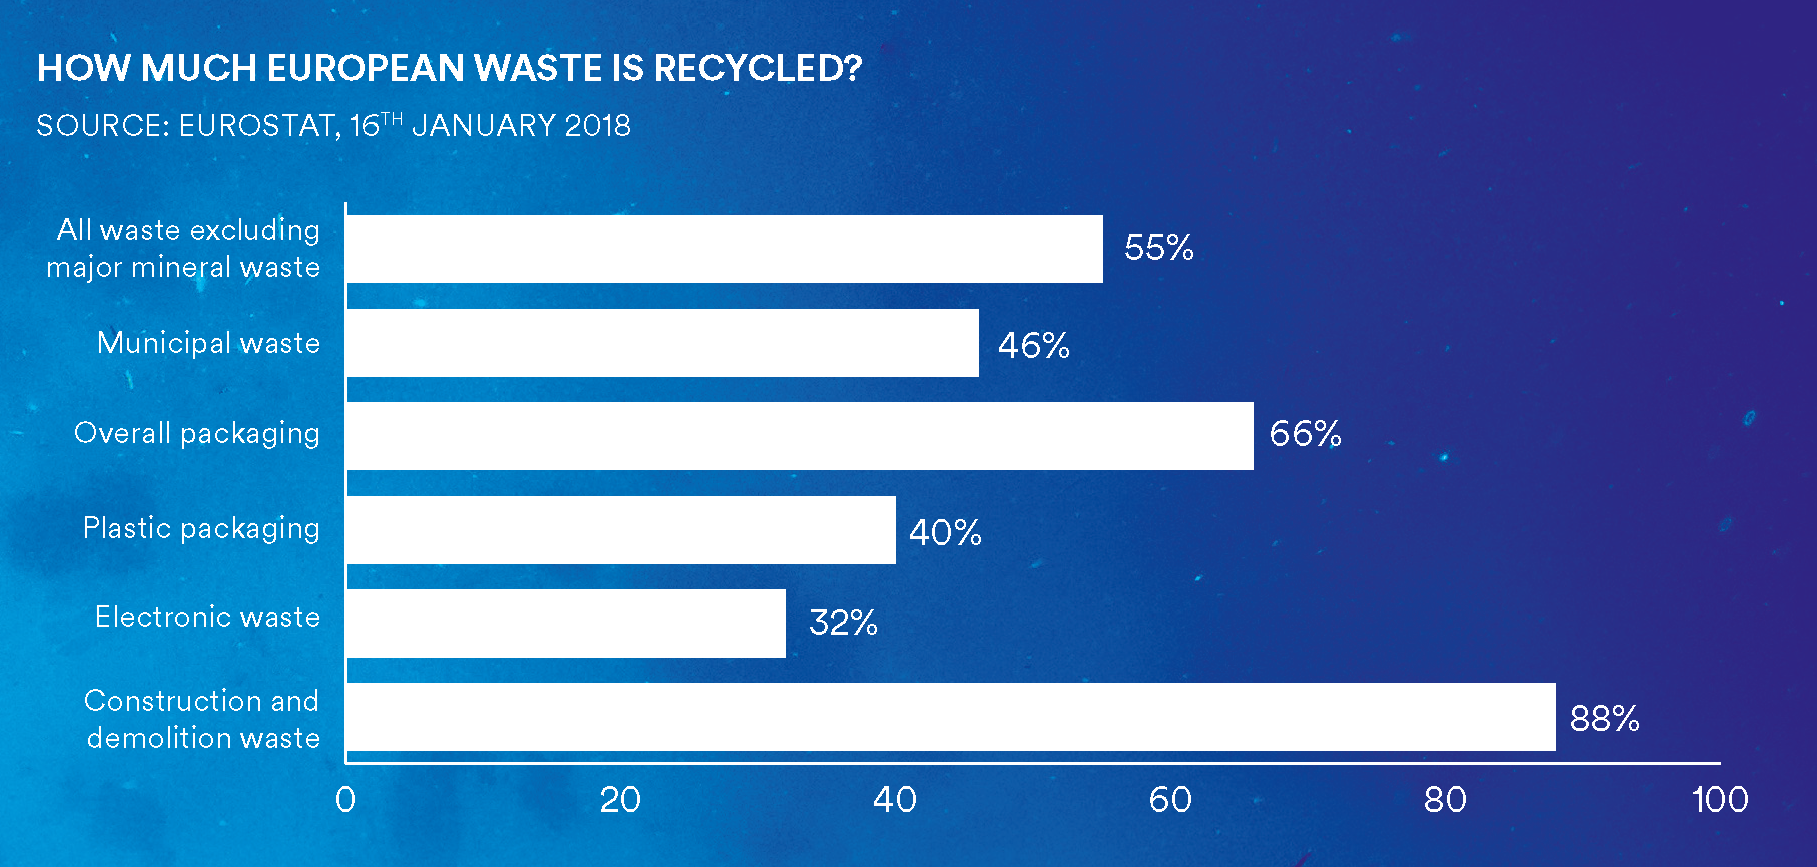 How much european waste is recycled? plastic packaging - 40%